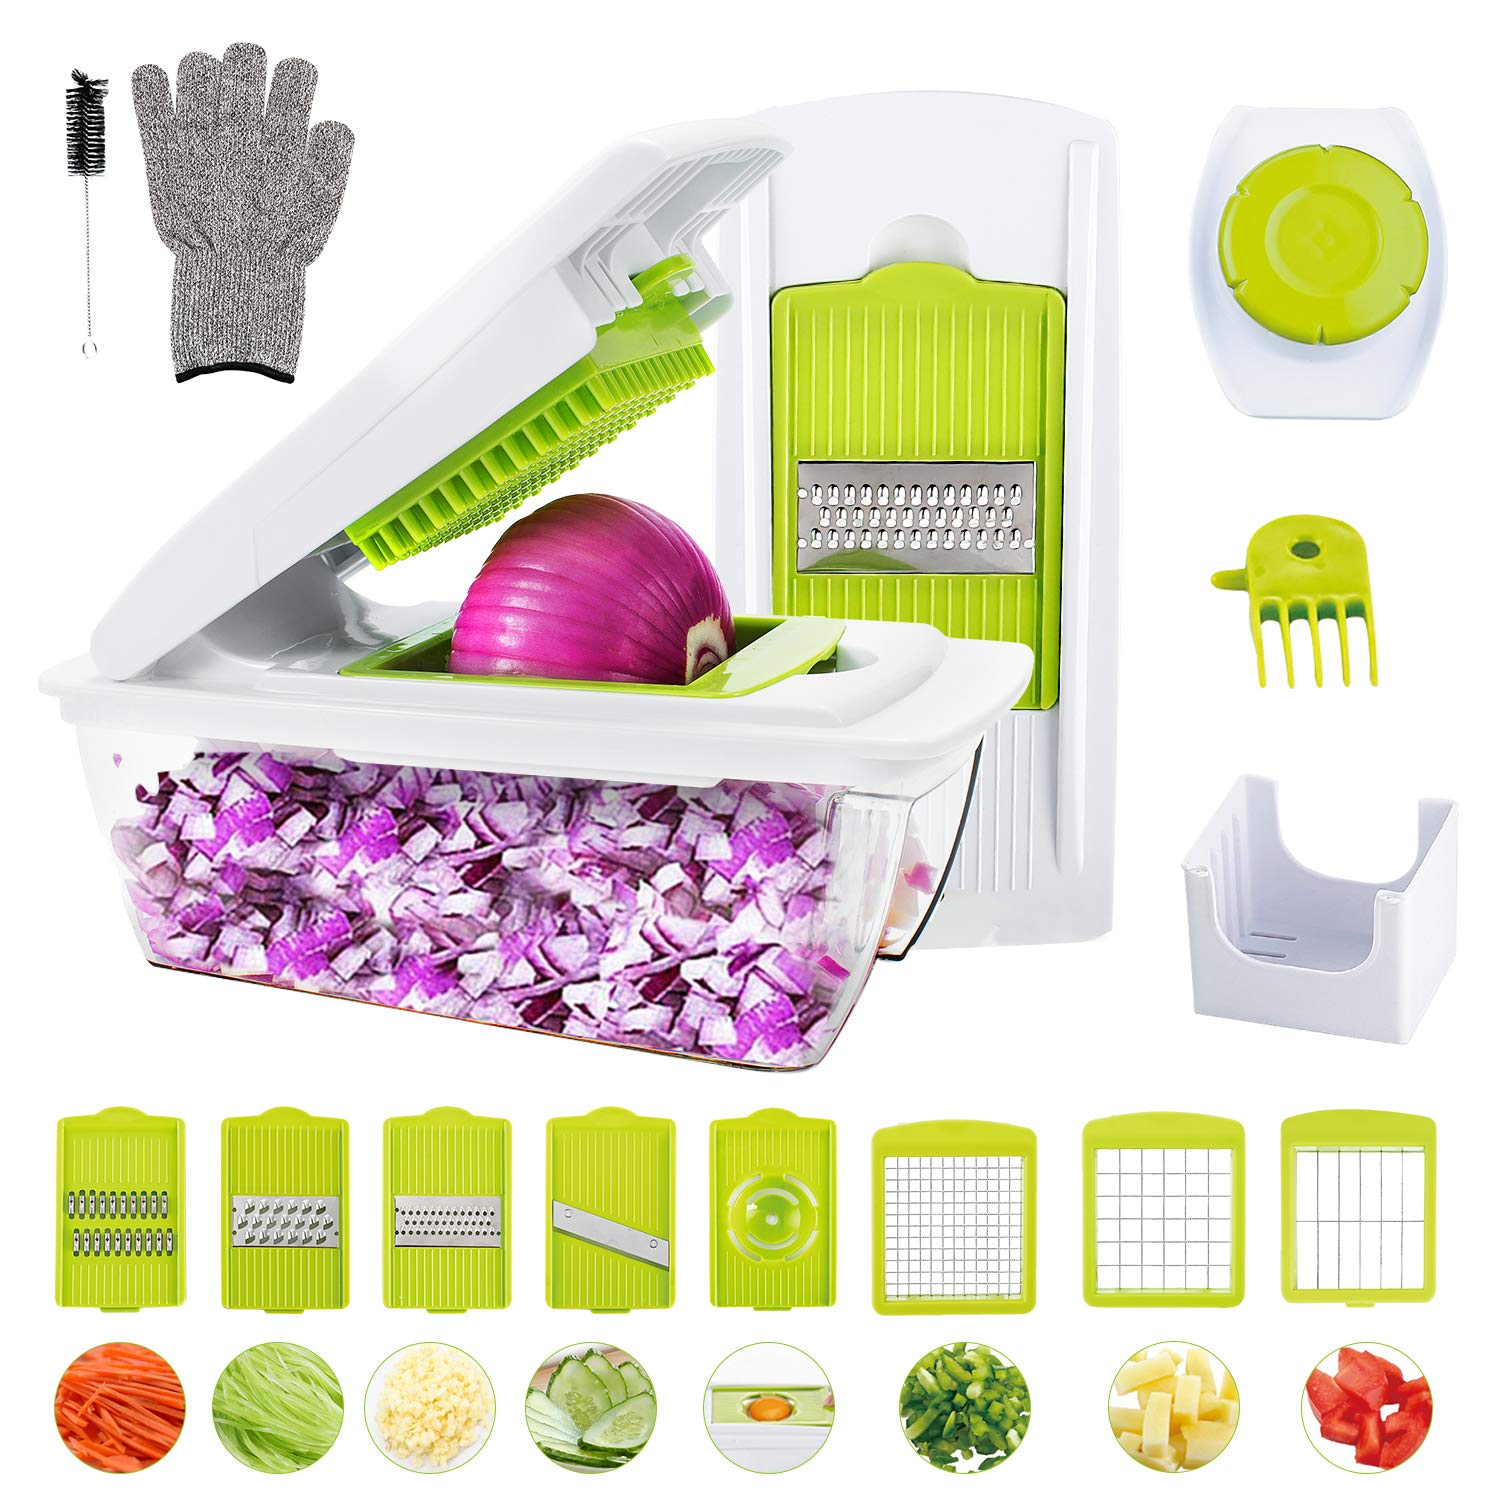 Vegetable Chopper, WOKOKO Food Chopper Cutter Onion Slicer Dicer Veggie Slicer Manual Mandoline for Garlic, Cabbage, Carrot, Potato, Tomato, Fruit, Salad by WOKOKO